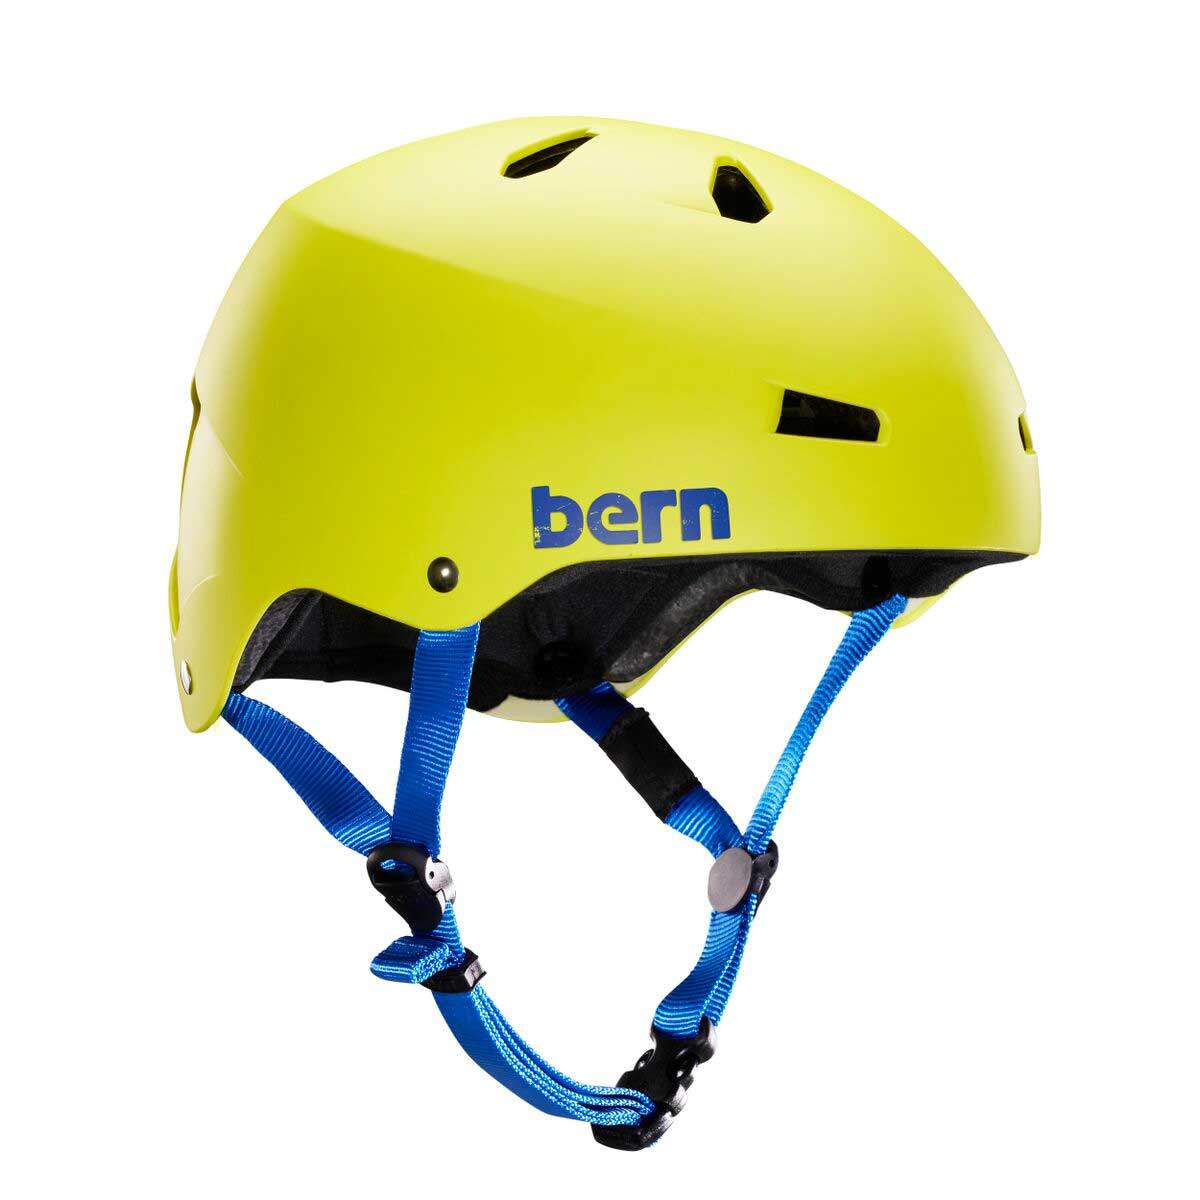 bern-casque-buyers-guide-2018